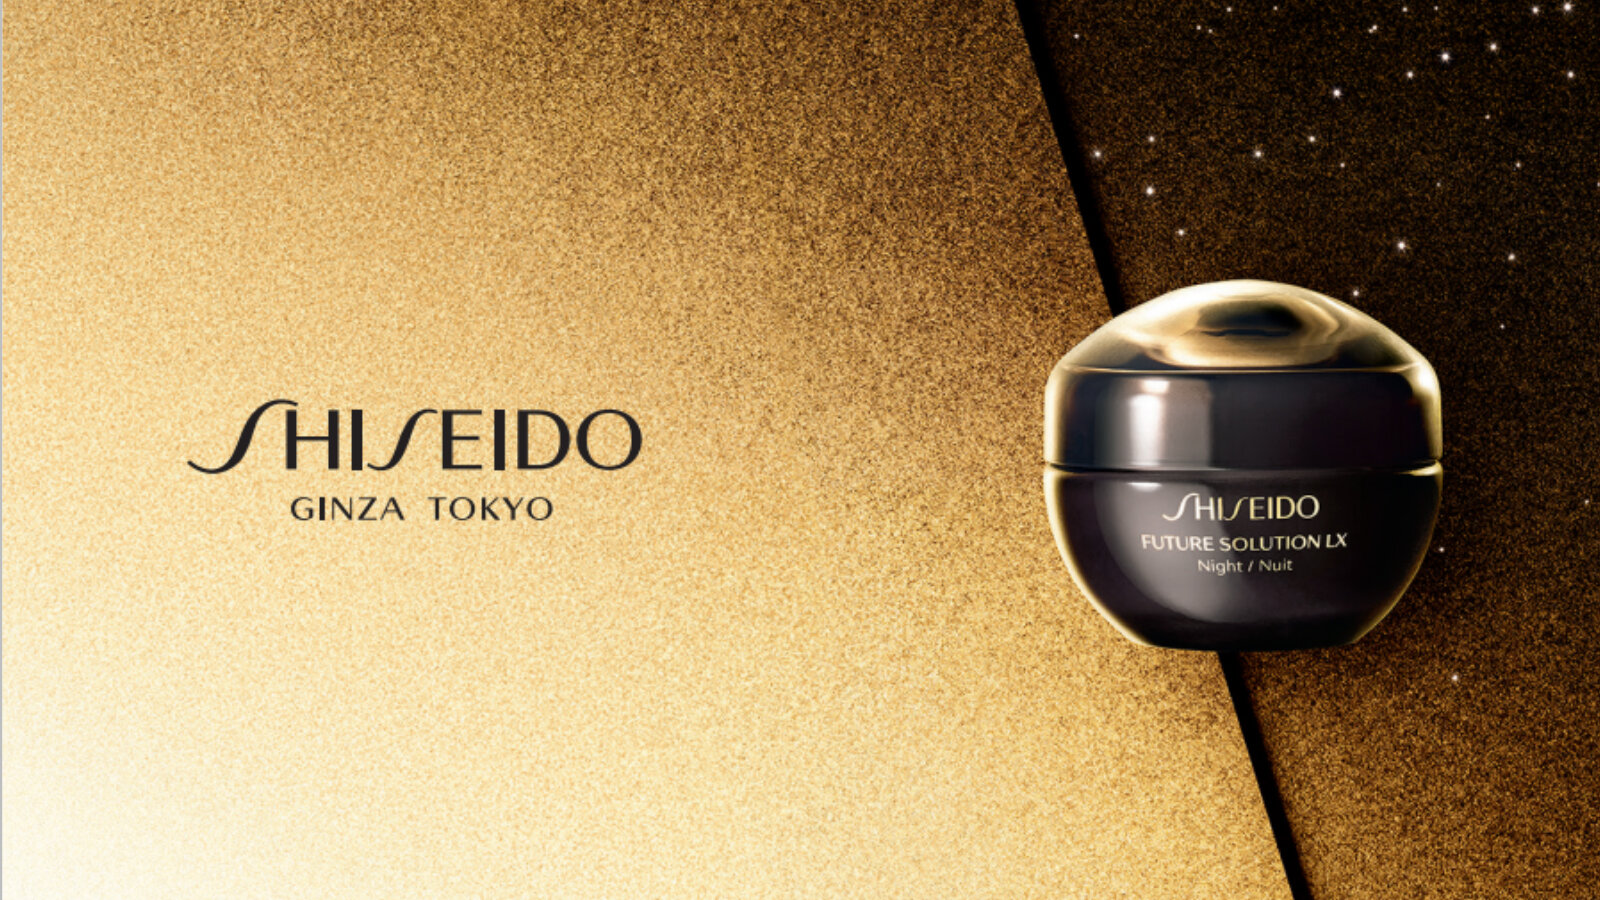 1-2S_SHISEIDO-coffret 10 ans -Design-Packaging.jpg